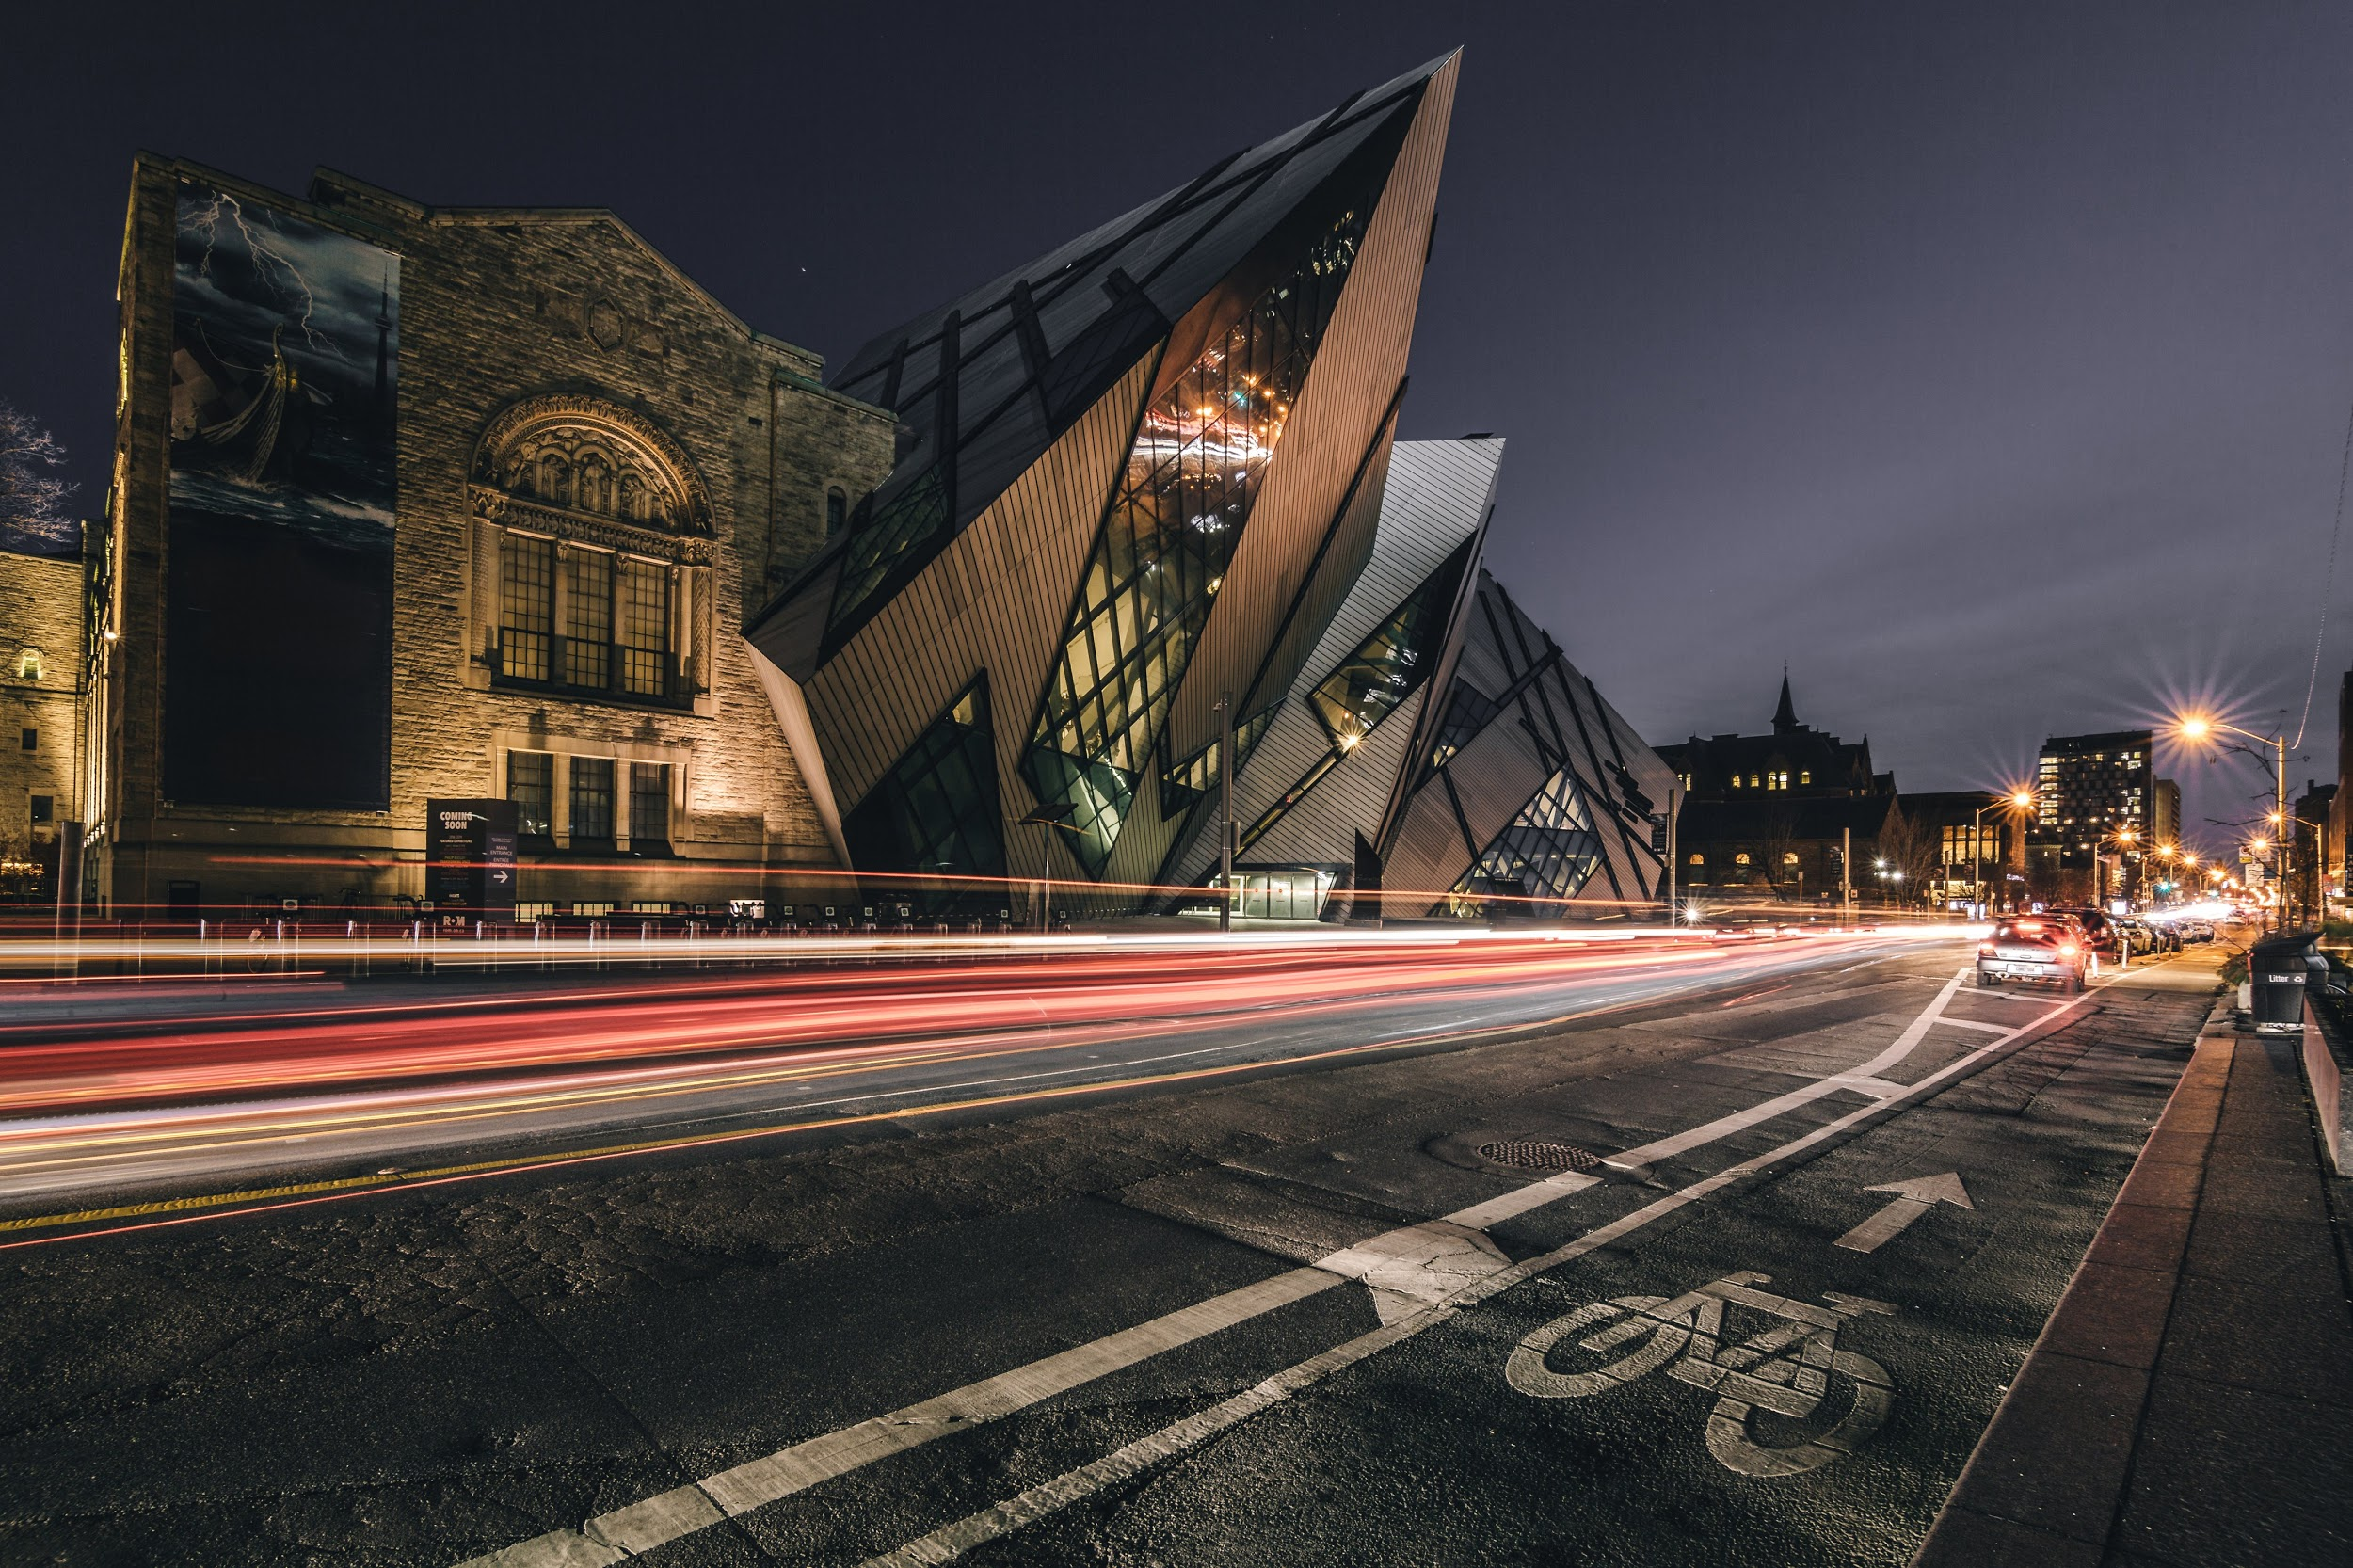 Science and Technology Museums in the U.S.